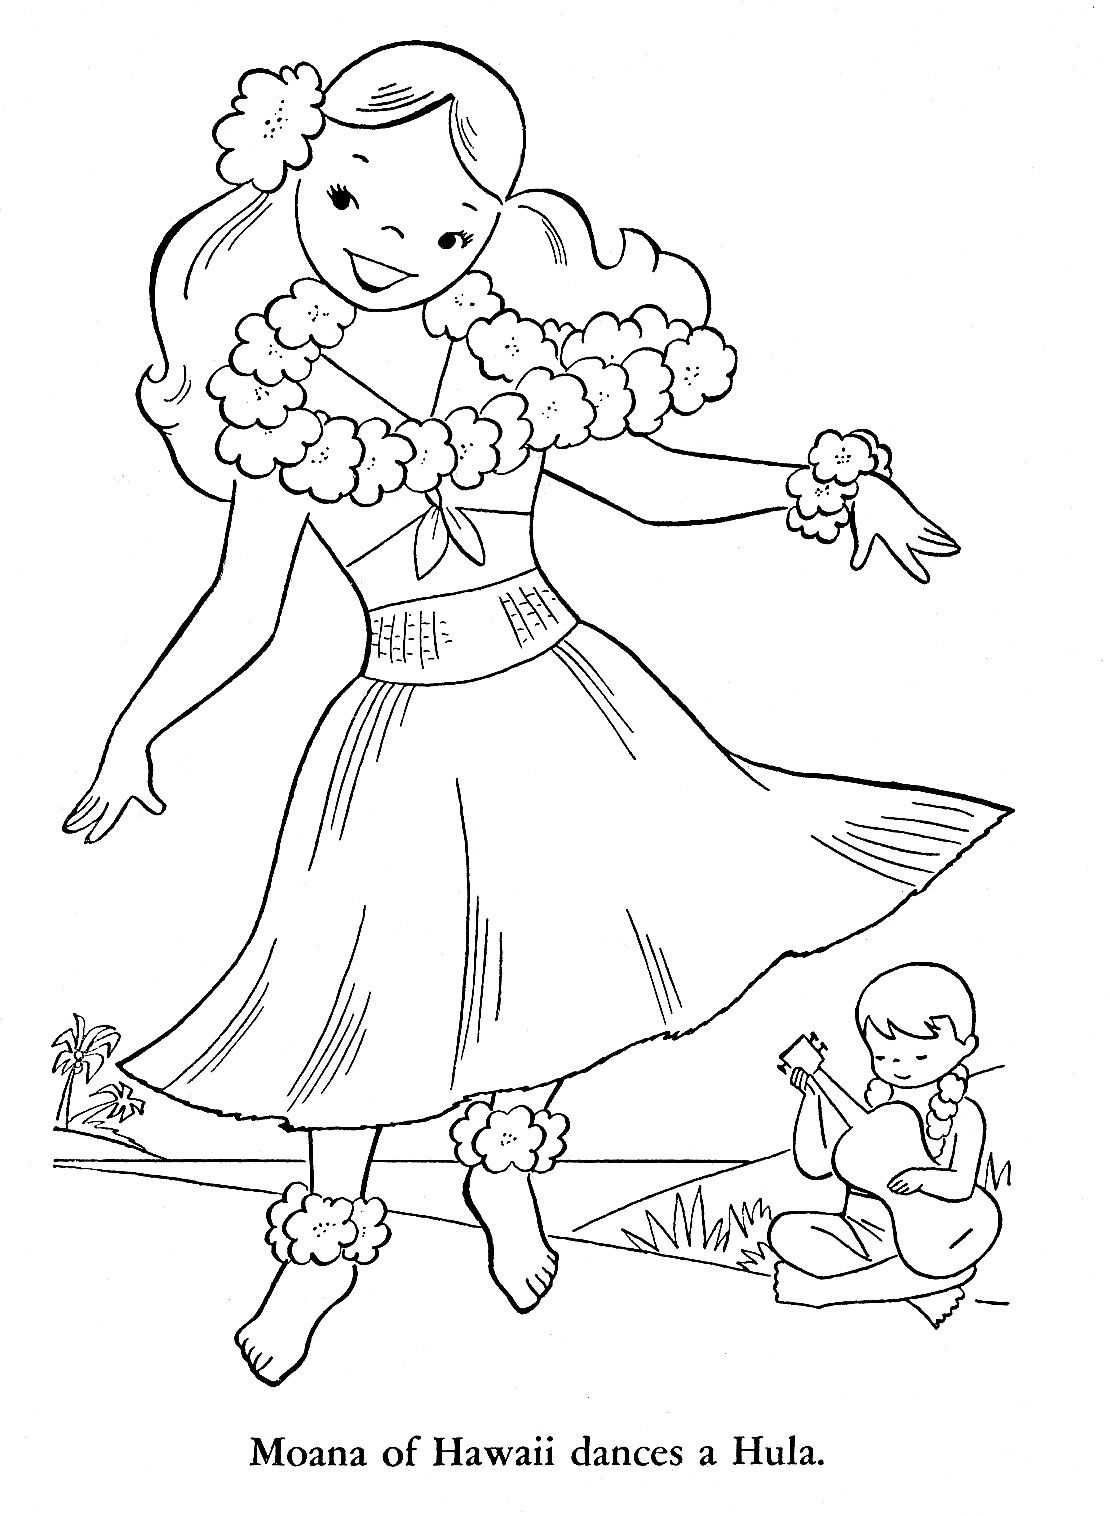 top 10 hawaiian coloring pages for toddler - Hawaii Coloring Pages